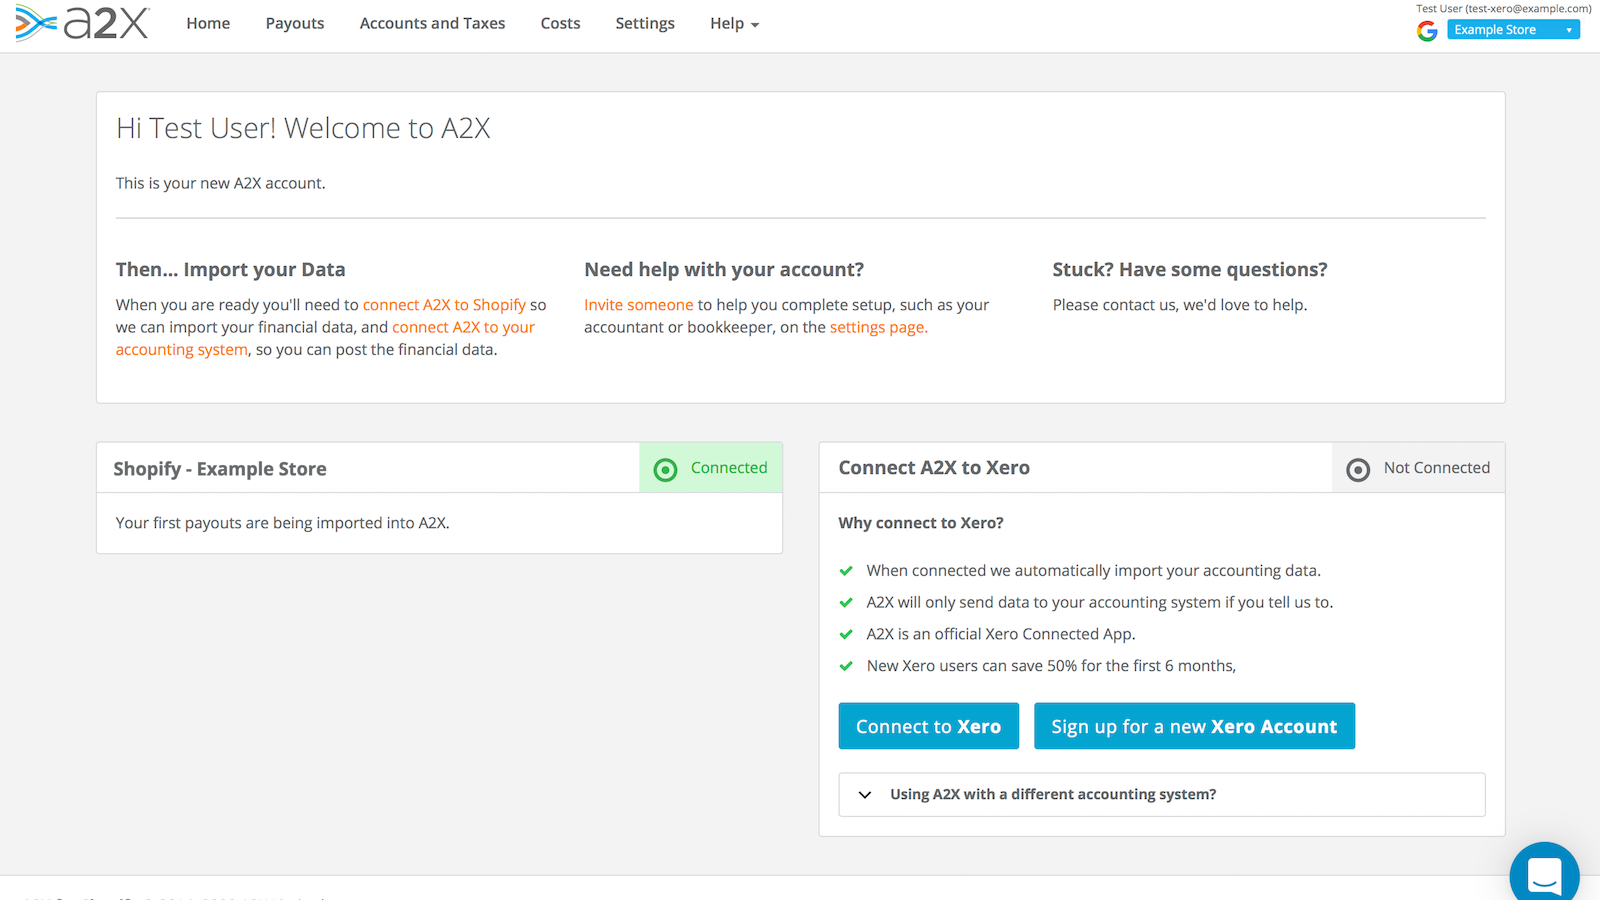 Quickly connect to an existing or new Xero account